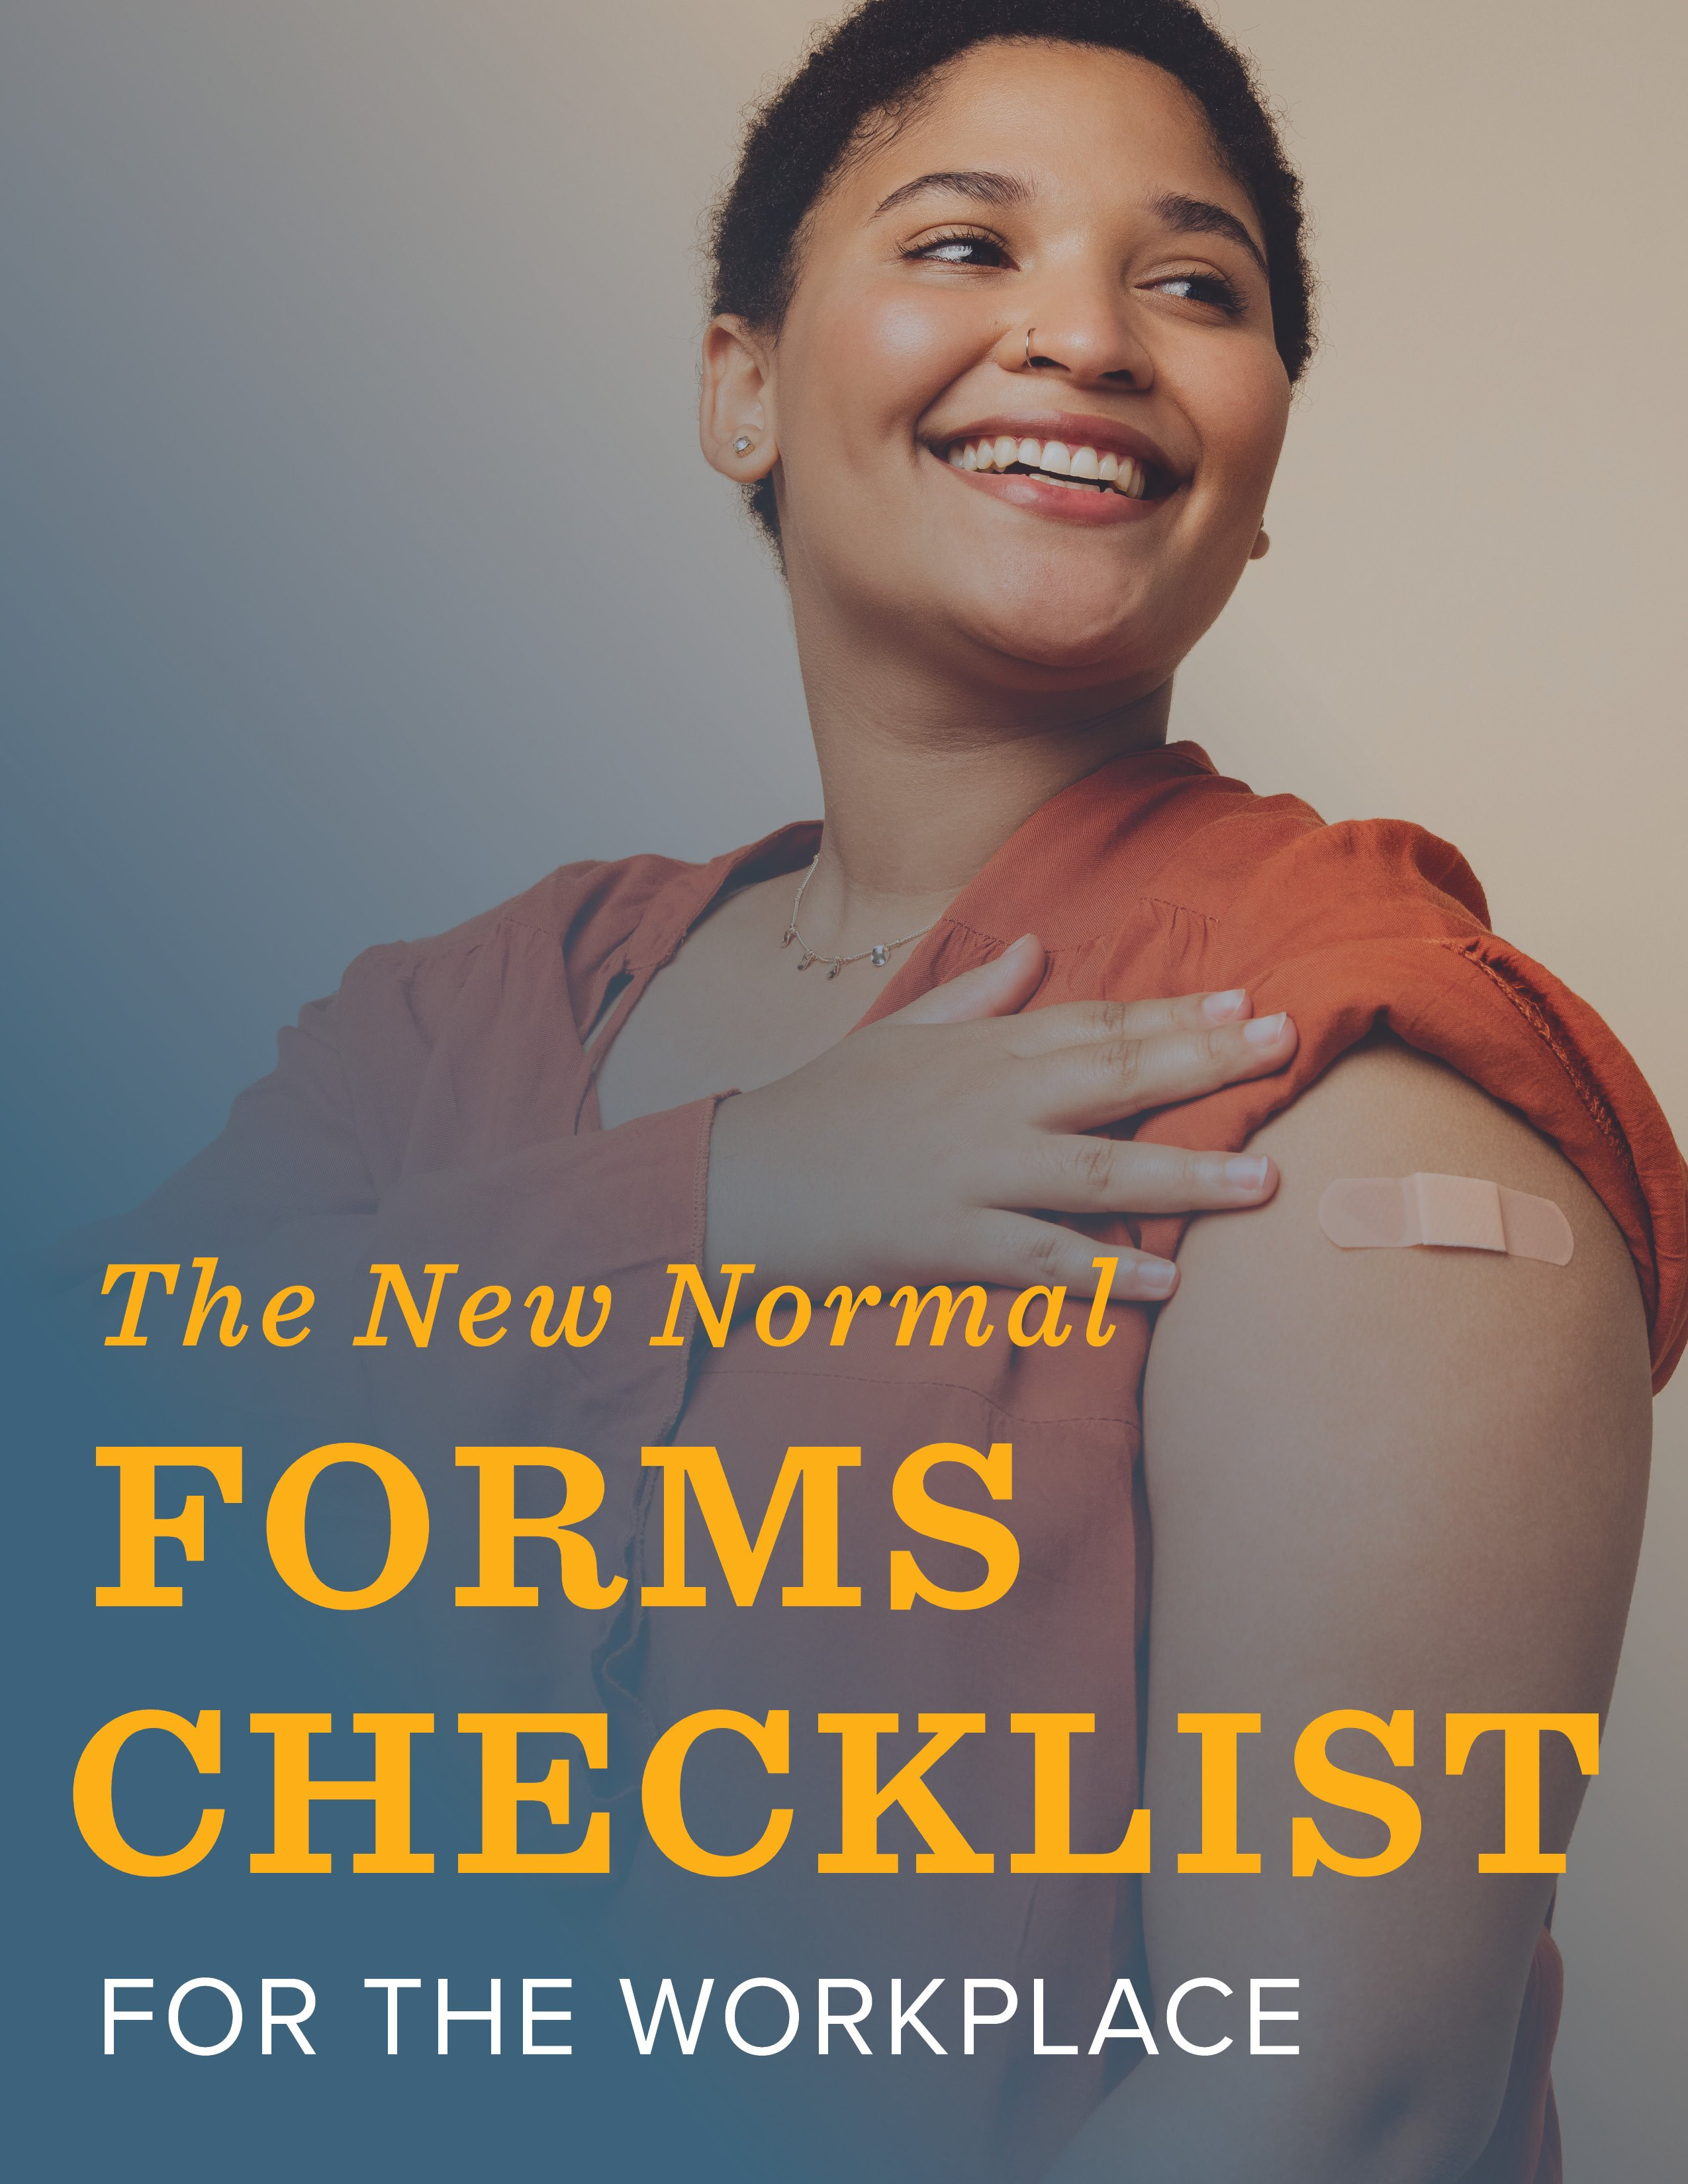 The New Normal Forms Checklist for the Workplace